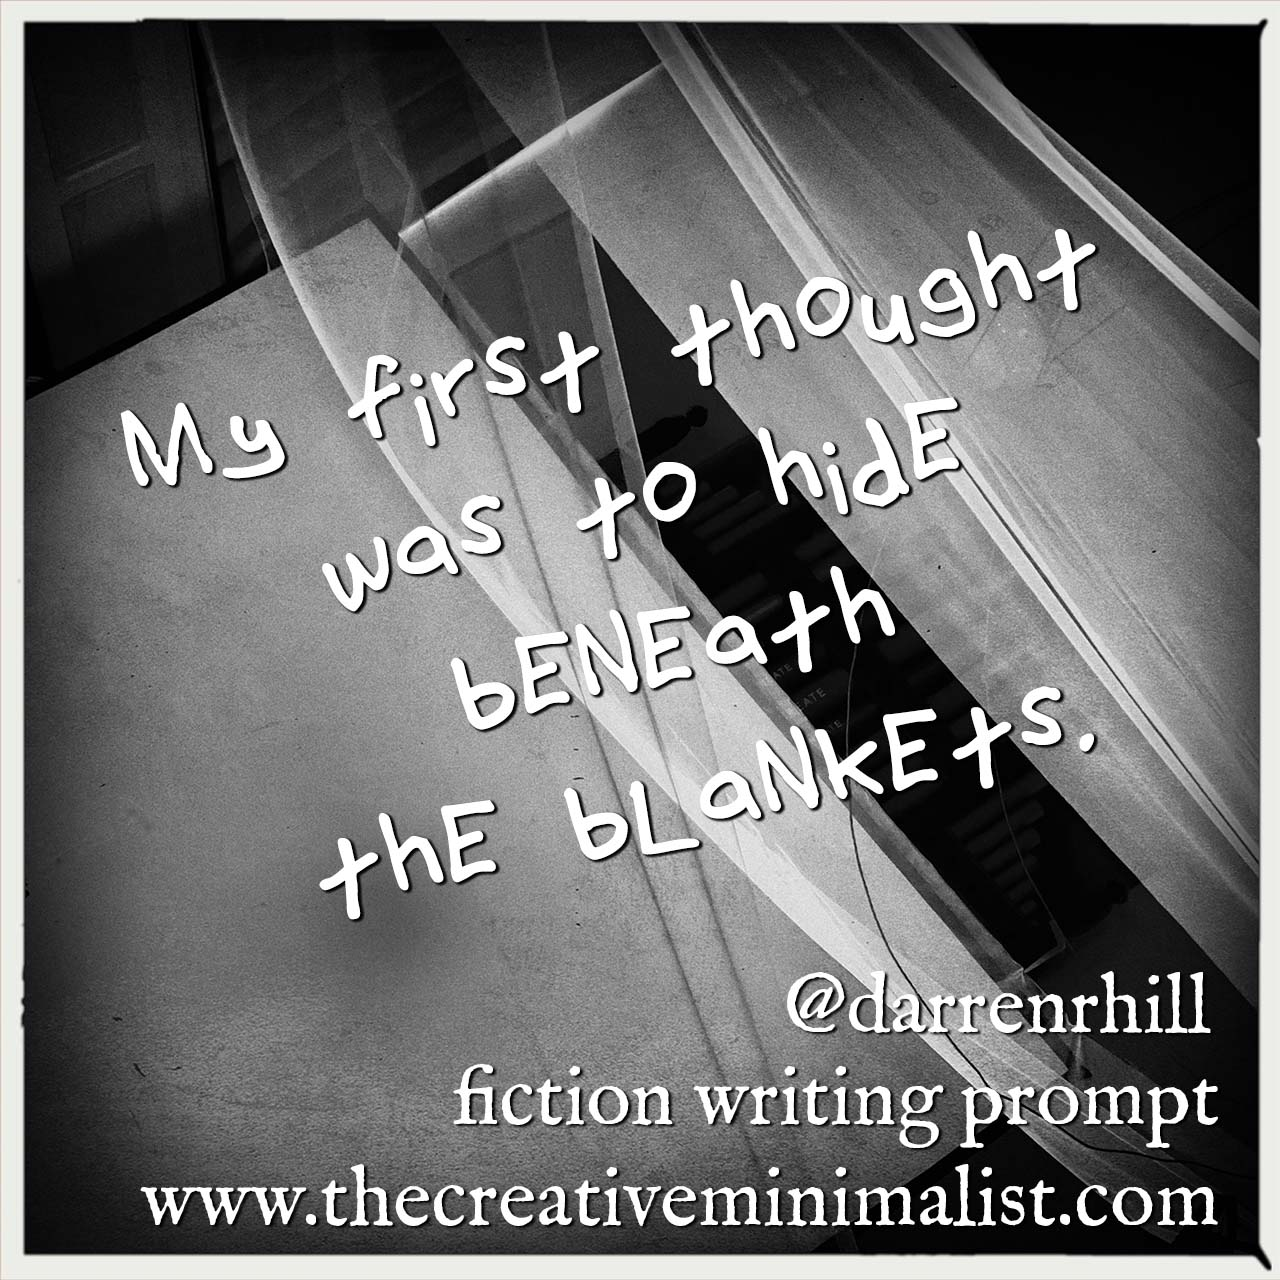 My first thought was to hide beneath the blankets - fiction writing prompt